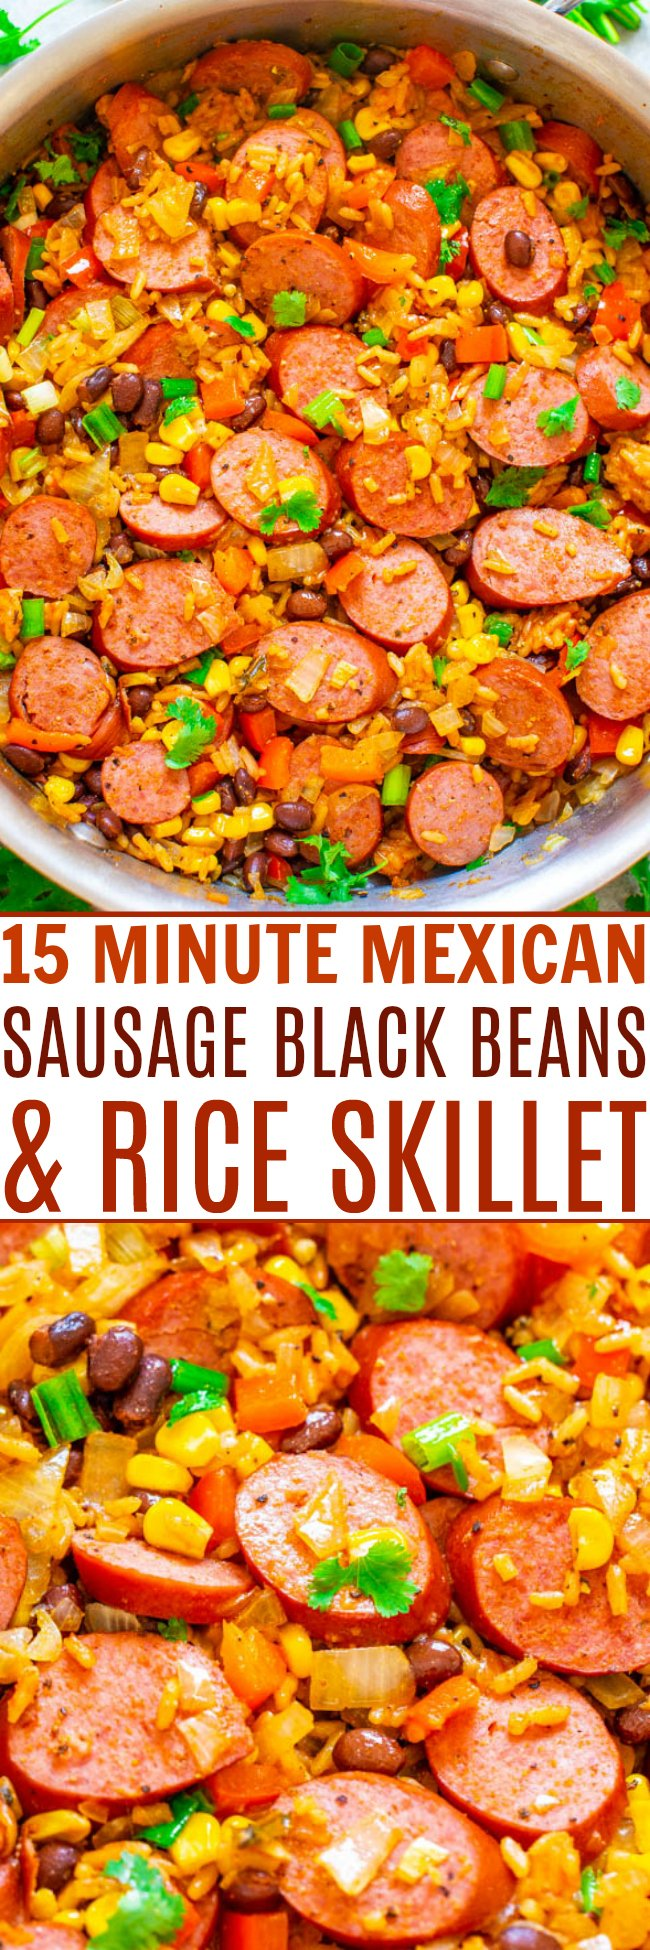 15-Minute Mexican Sausage, Black Beans, and Rice Skillet - A FAST and EASY recipe that's loaded with Mexican-inspired flavors and ingredients!! Break out of your chicken rut with this FLAVORFUL dish that's perfect for busy weeknights!!